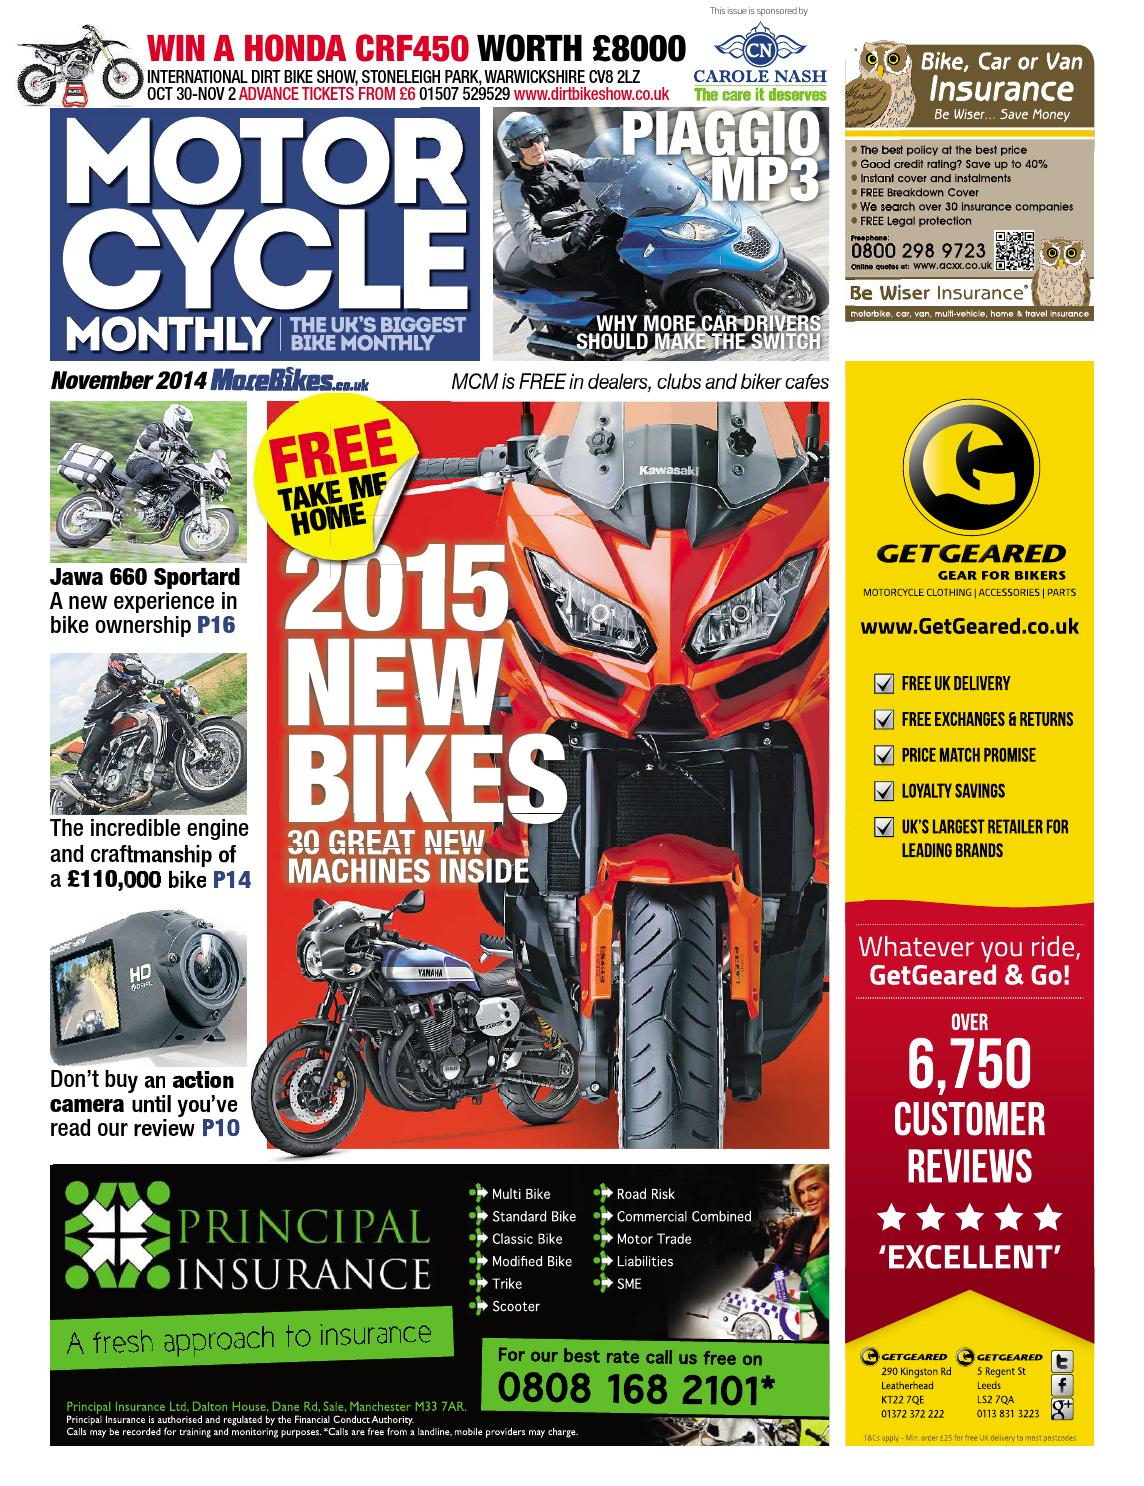 Motor Cycle Monthly - November 2014 by Mortons Media Group Ltd - issuu 34abd6640